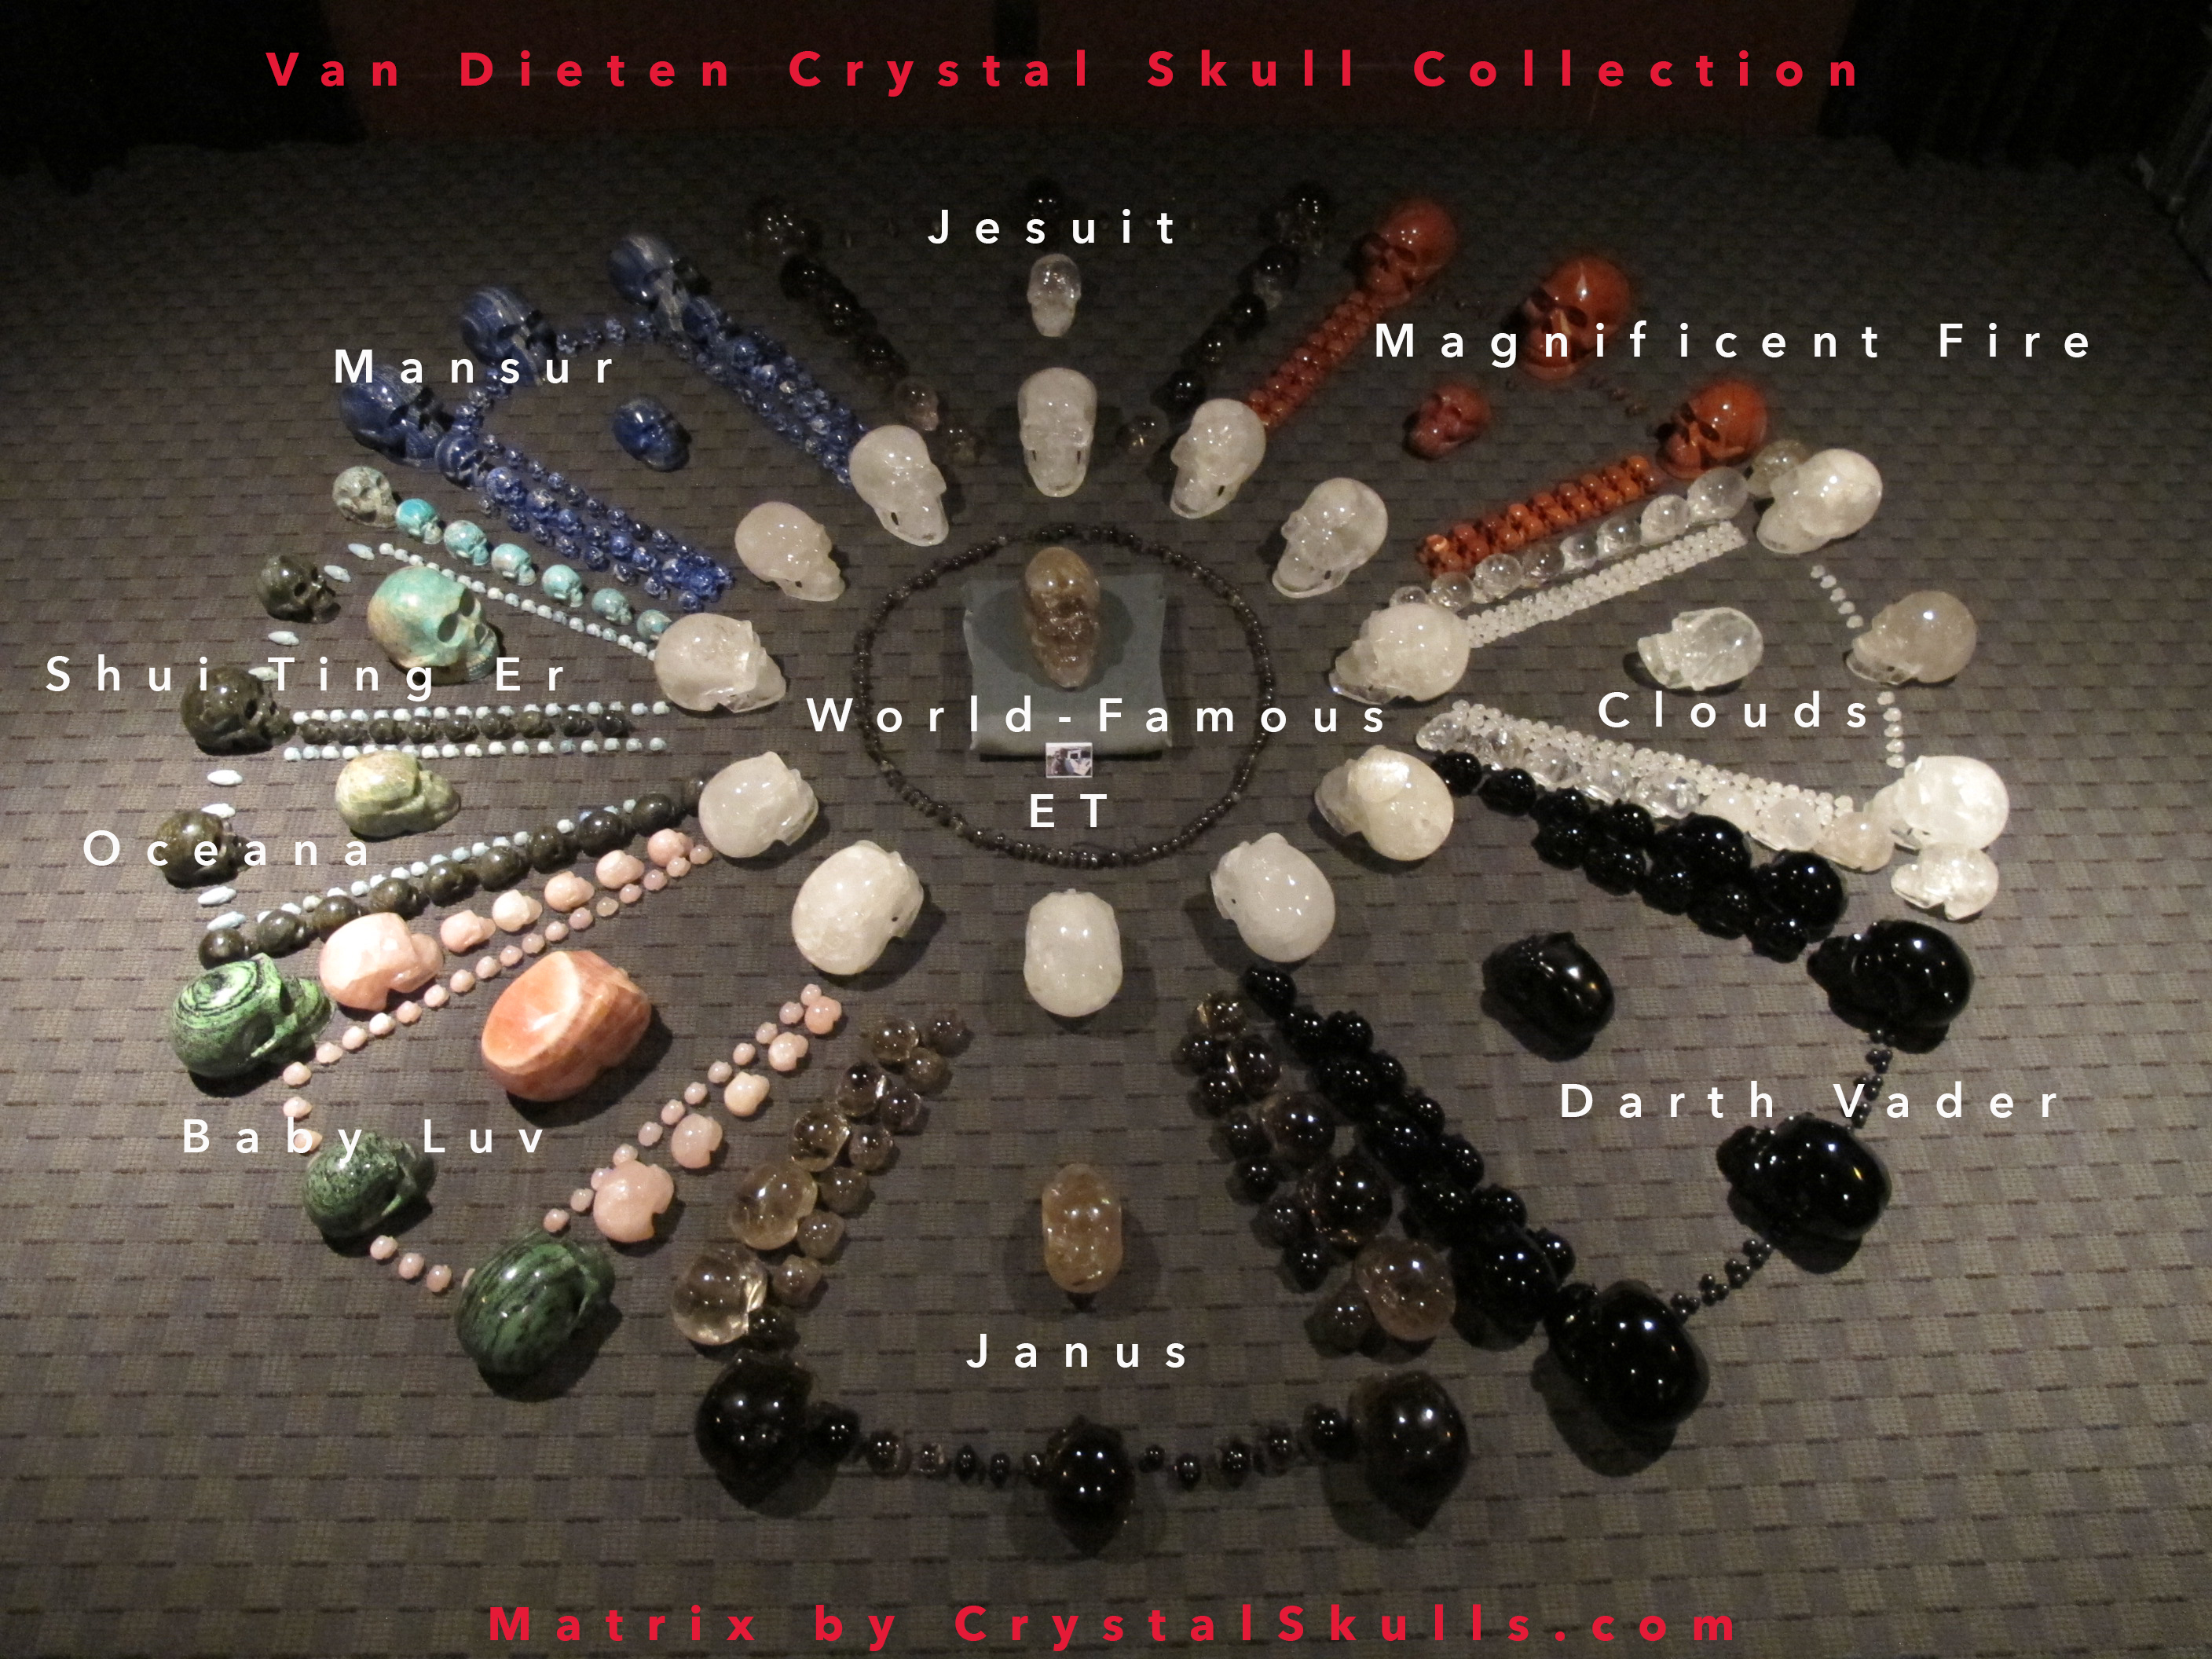 Specially activated crystal skulls in a special activation that took place over several days a select group of crystal skulls were energized with the ancient crystal skull et and the van fandeluxe Choice Image